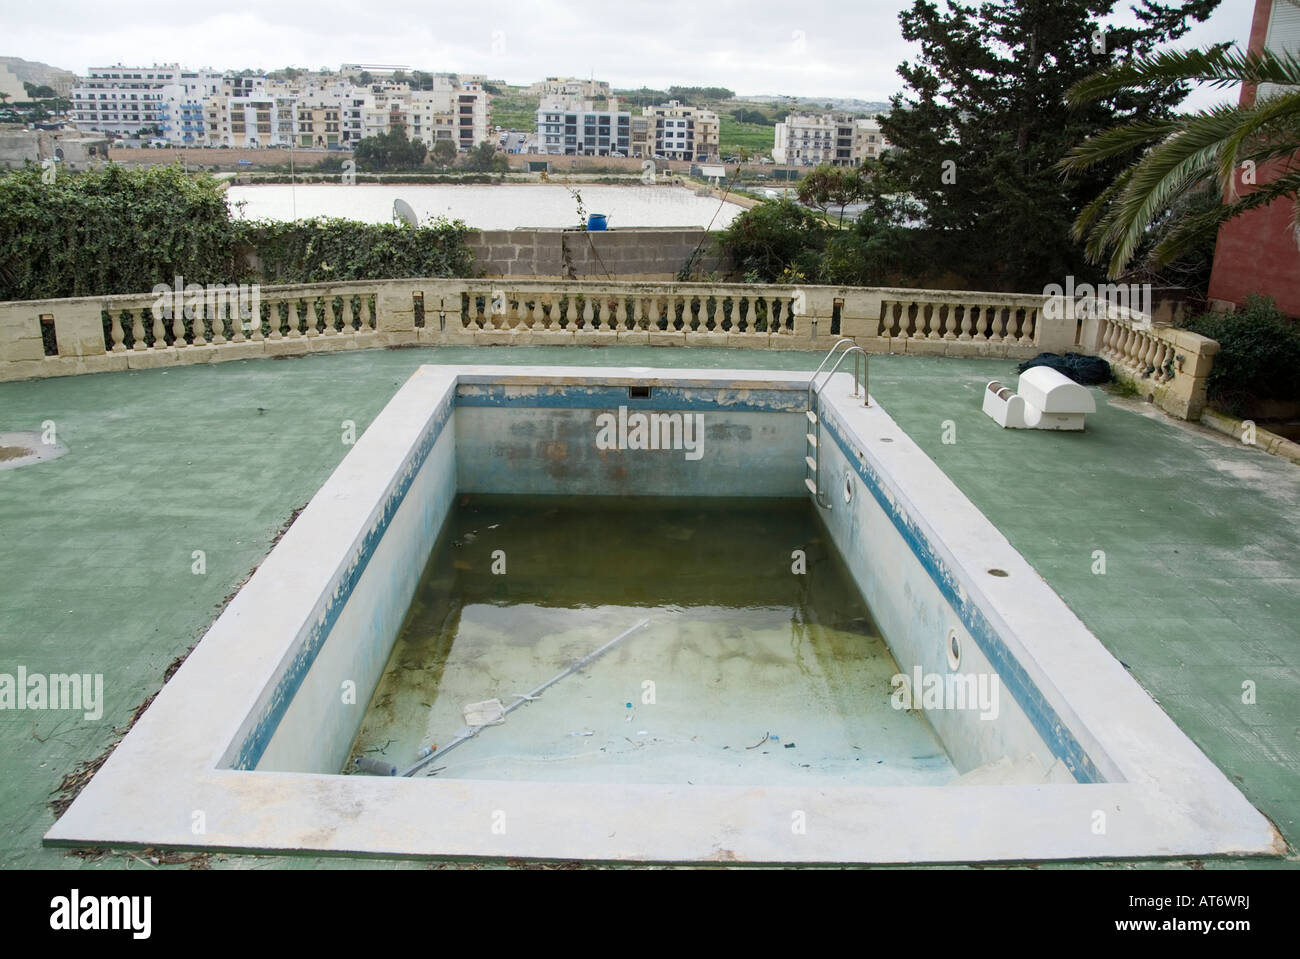 Empty swimming pool bad hotel rough dirty area stock photo for Empty swimming pool